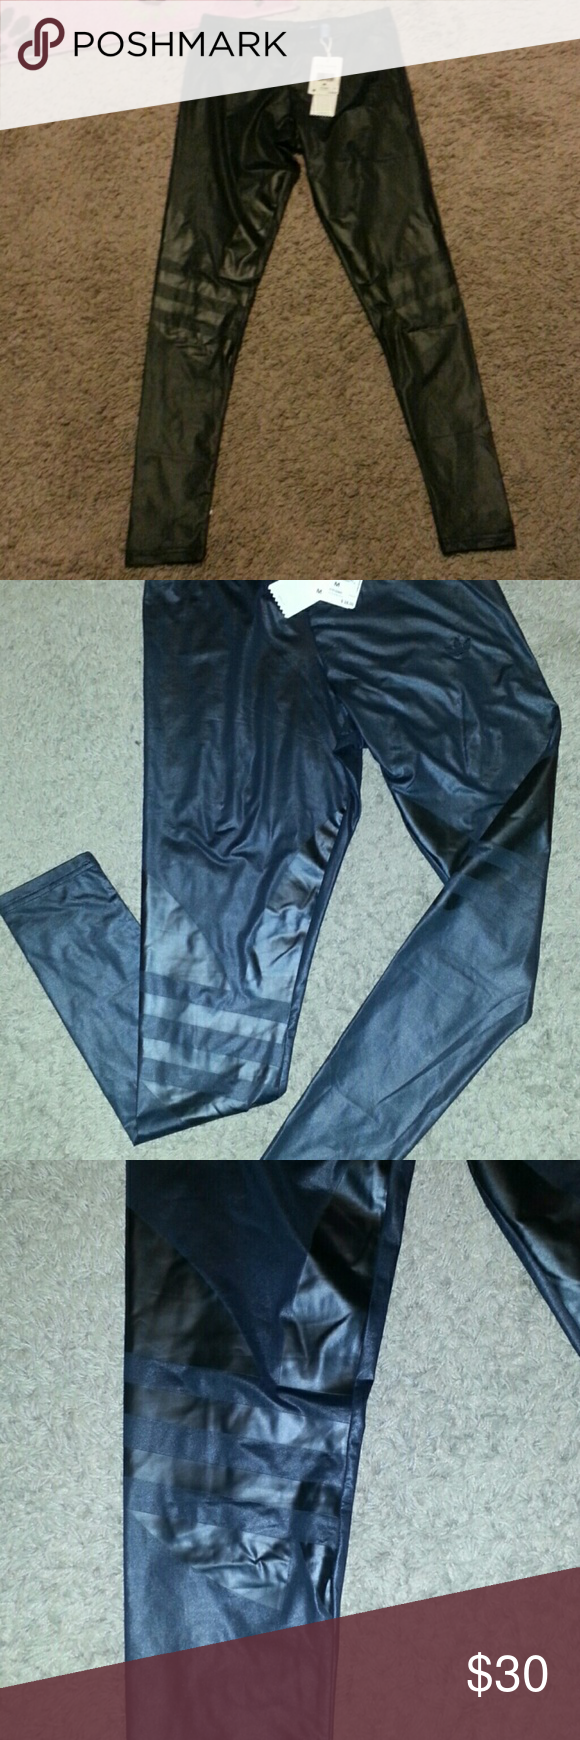 Adidas EF TRF Leggings Color: black  Brand new with tags Size Medium Adidas originals Has the adidas logo on the leggings. Leggings are of shiny and stretchy material Adidas Pants Leggings